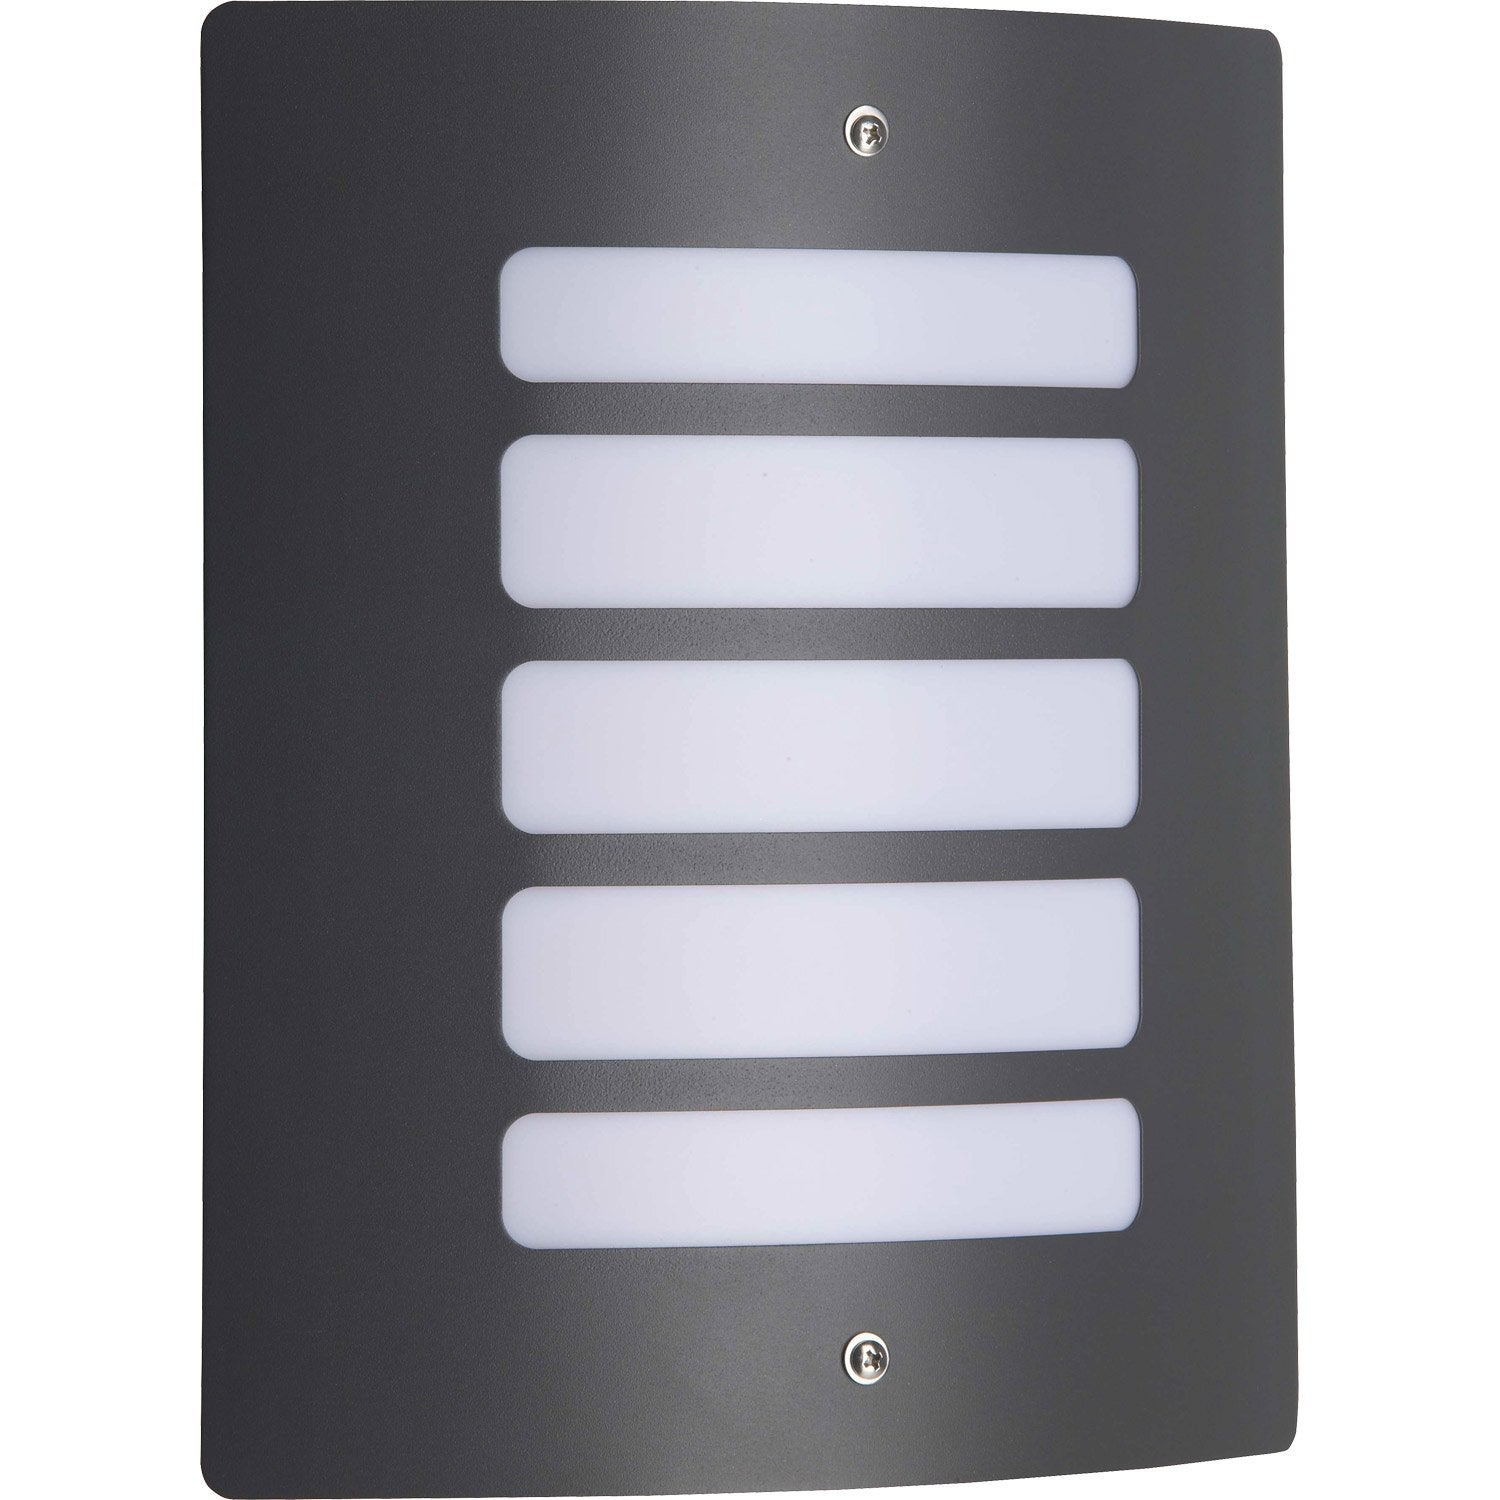 Demi applique ext rieure todd e27 60 w anthracite for Applique murale exterieur led leroy merlin